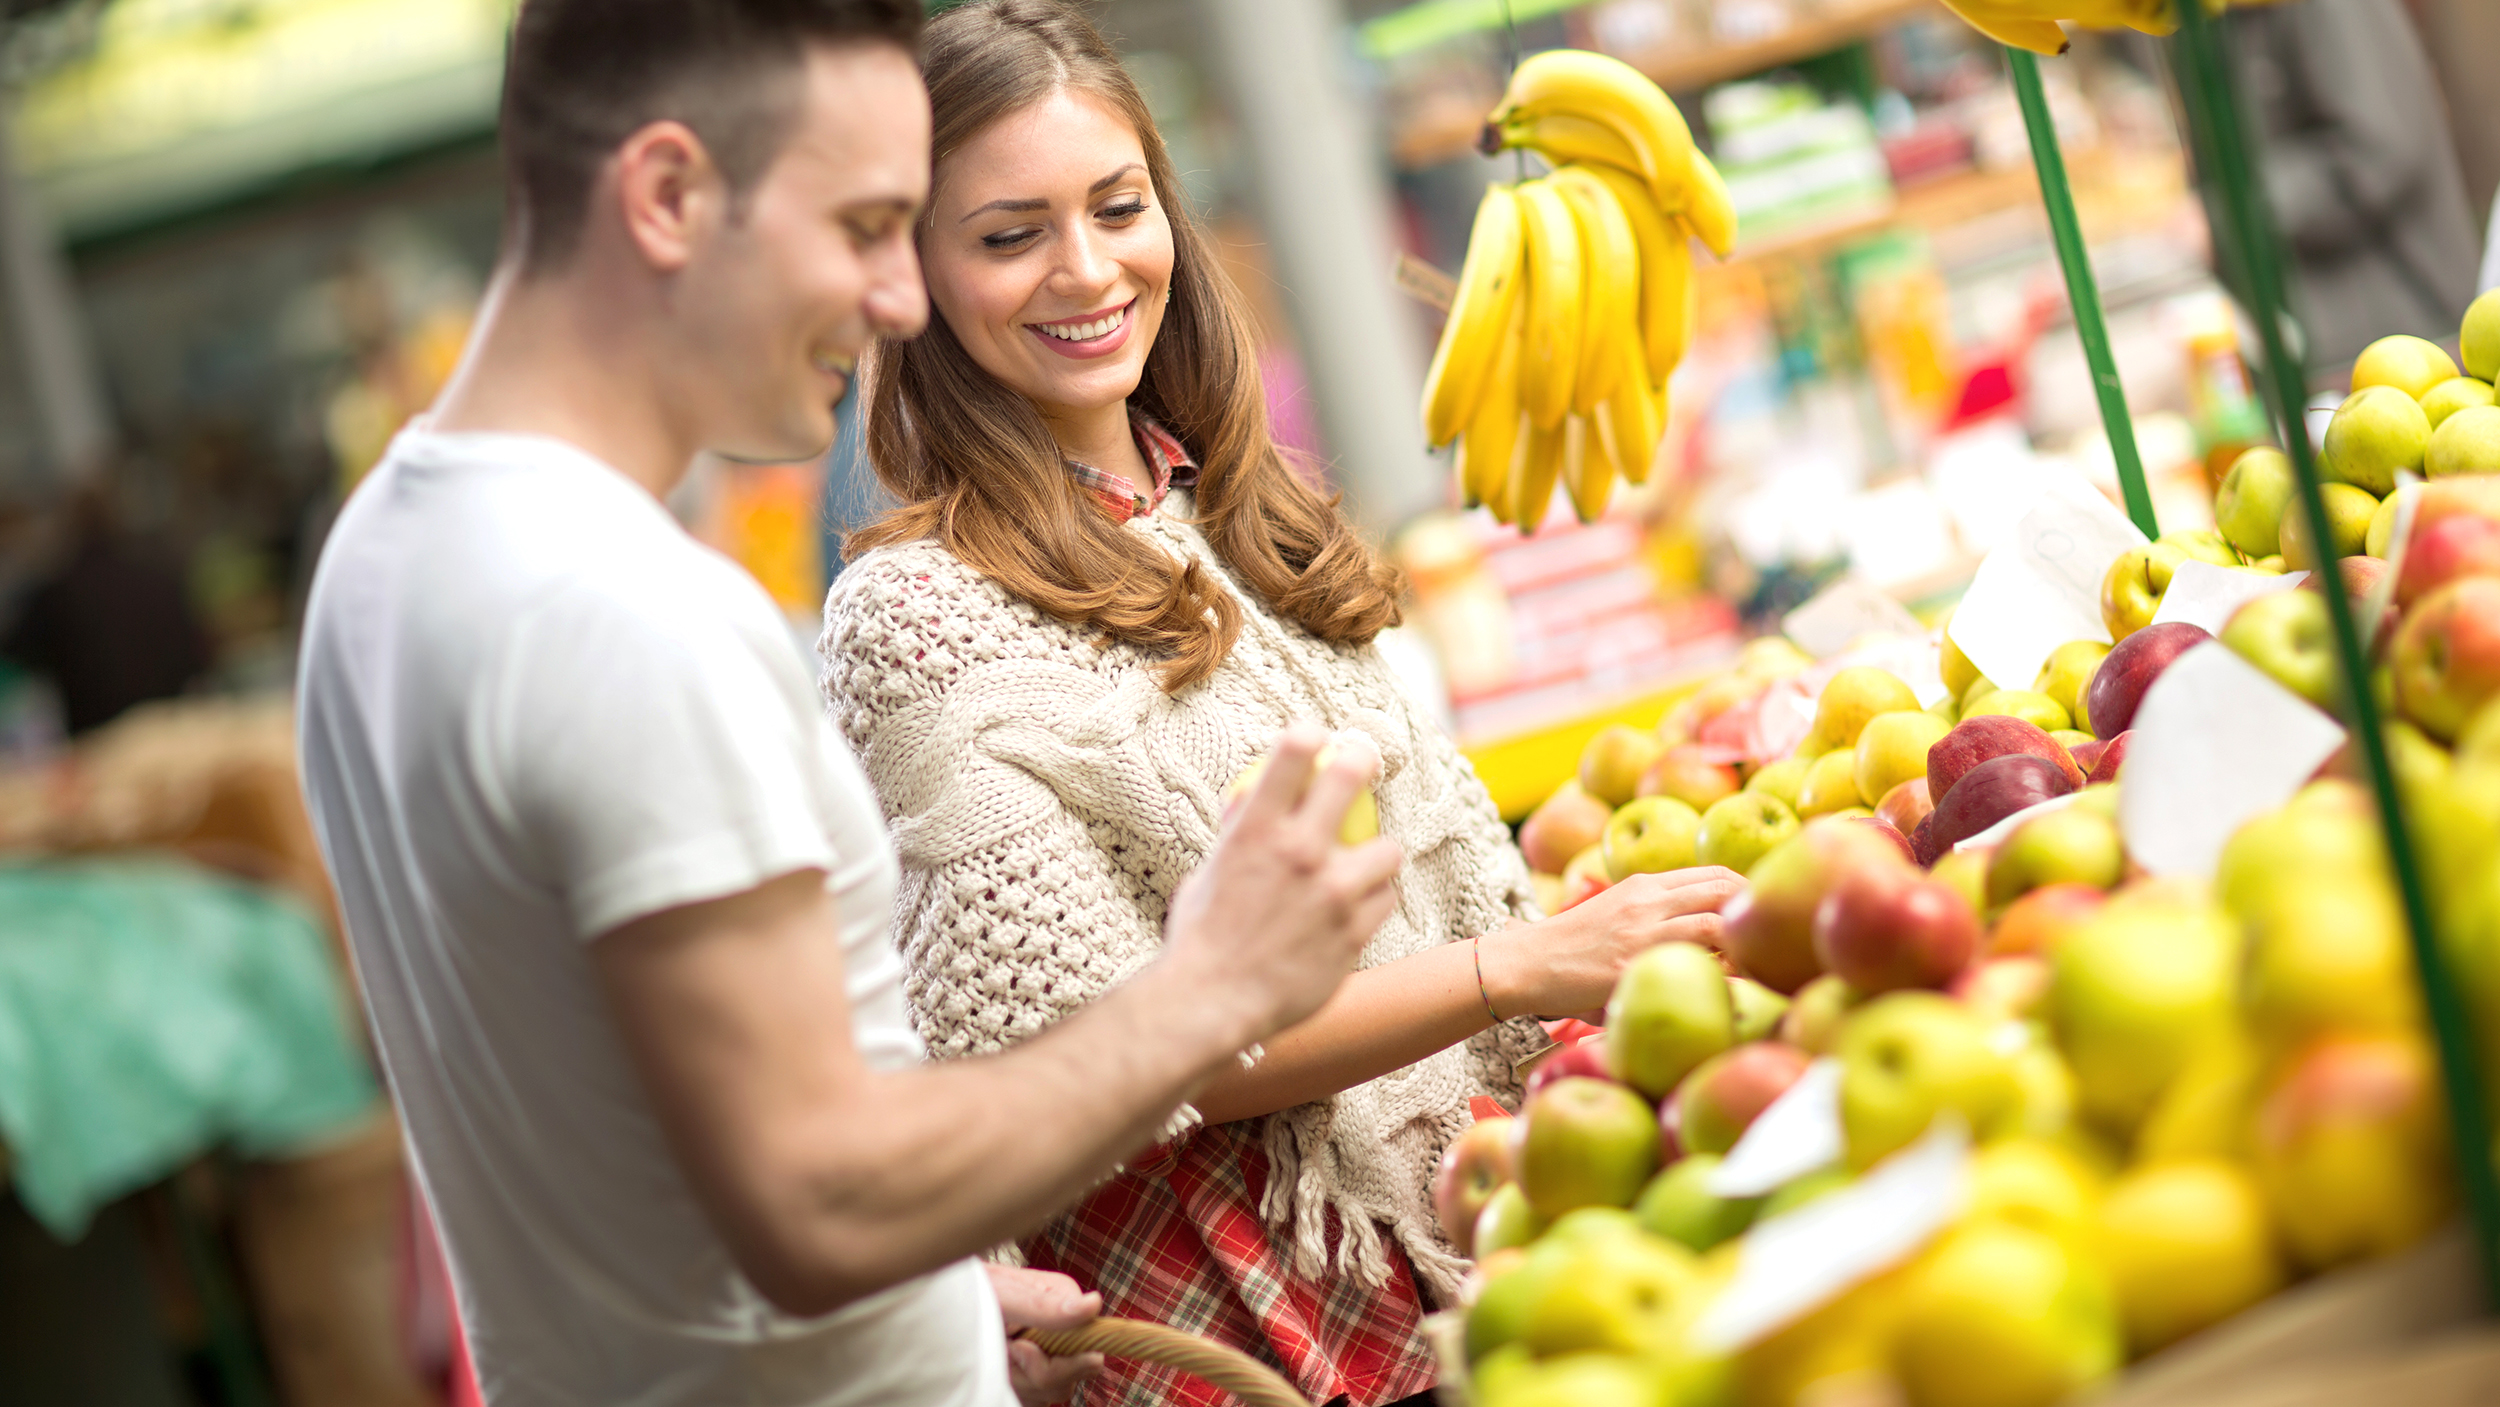 5 Interesting Facts about Love we probably took note of (Part 1): shopping for love